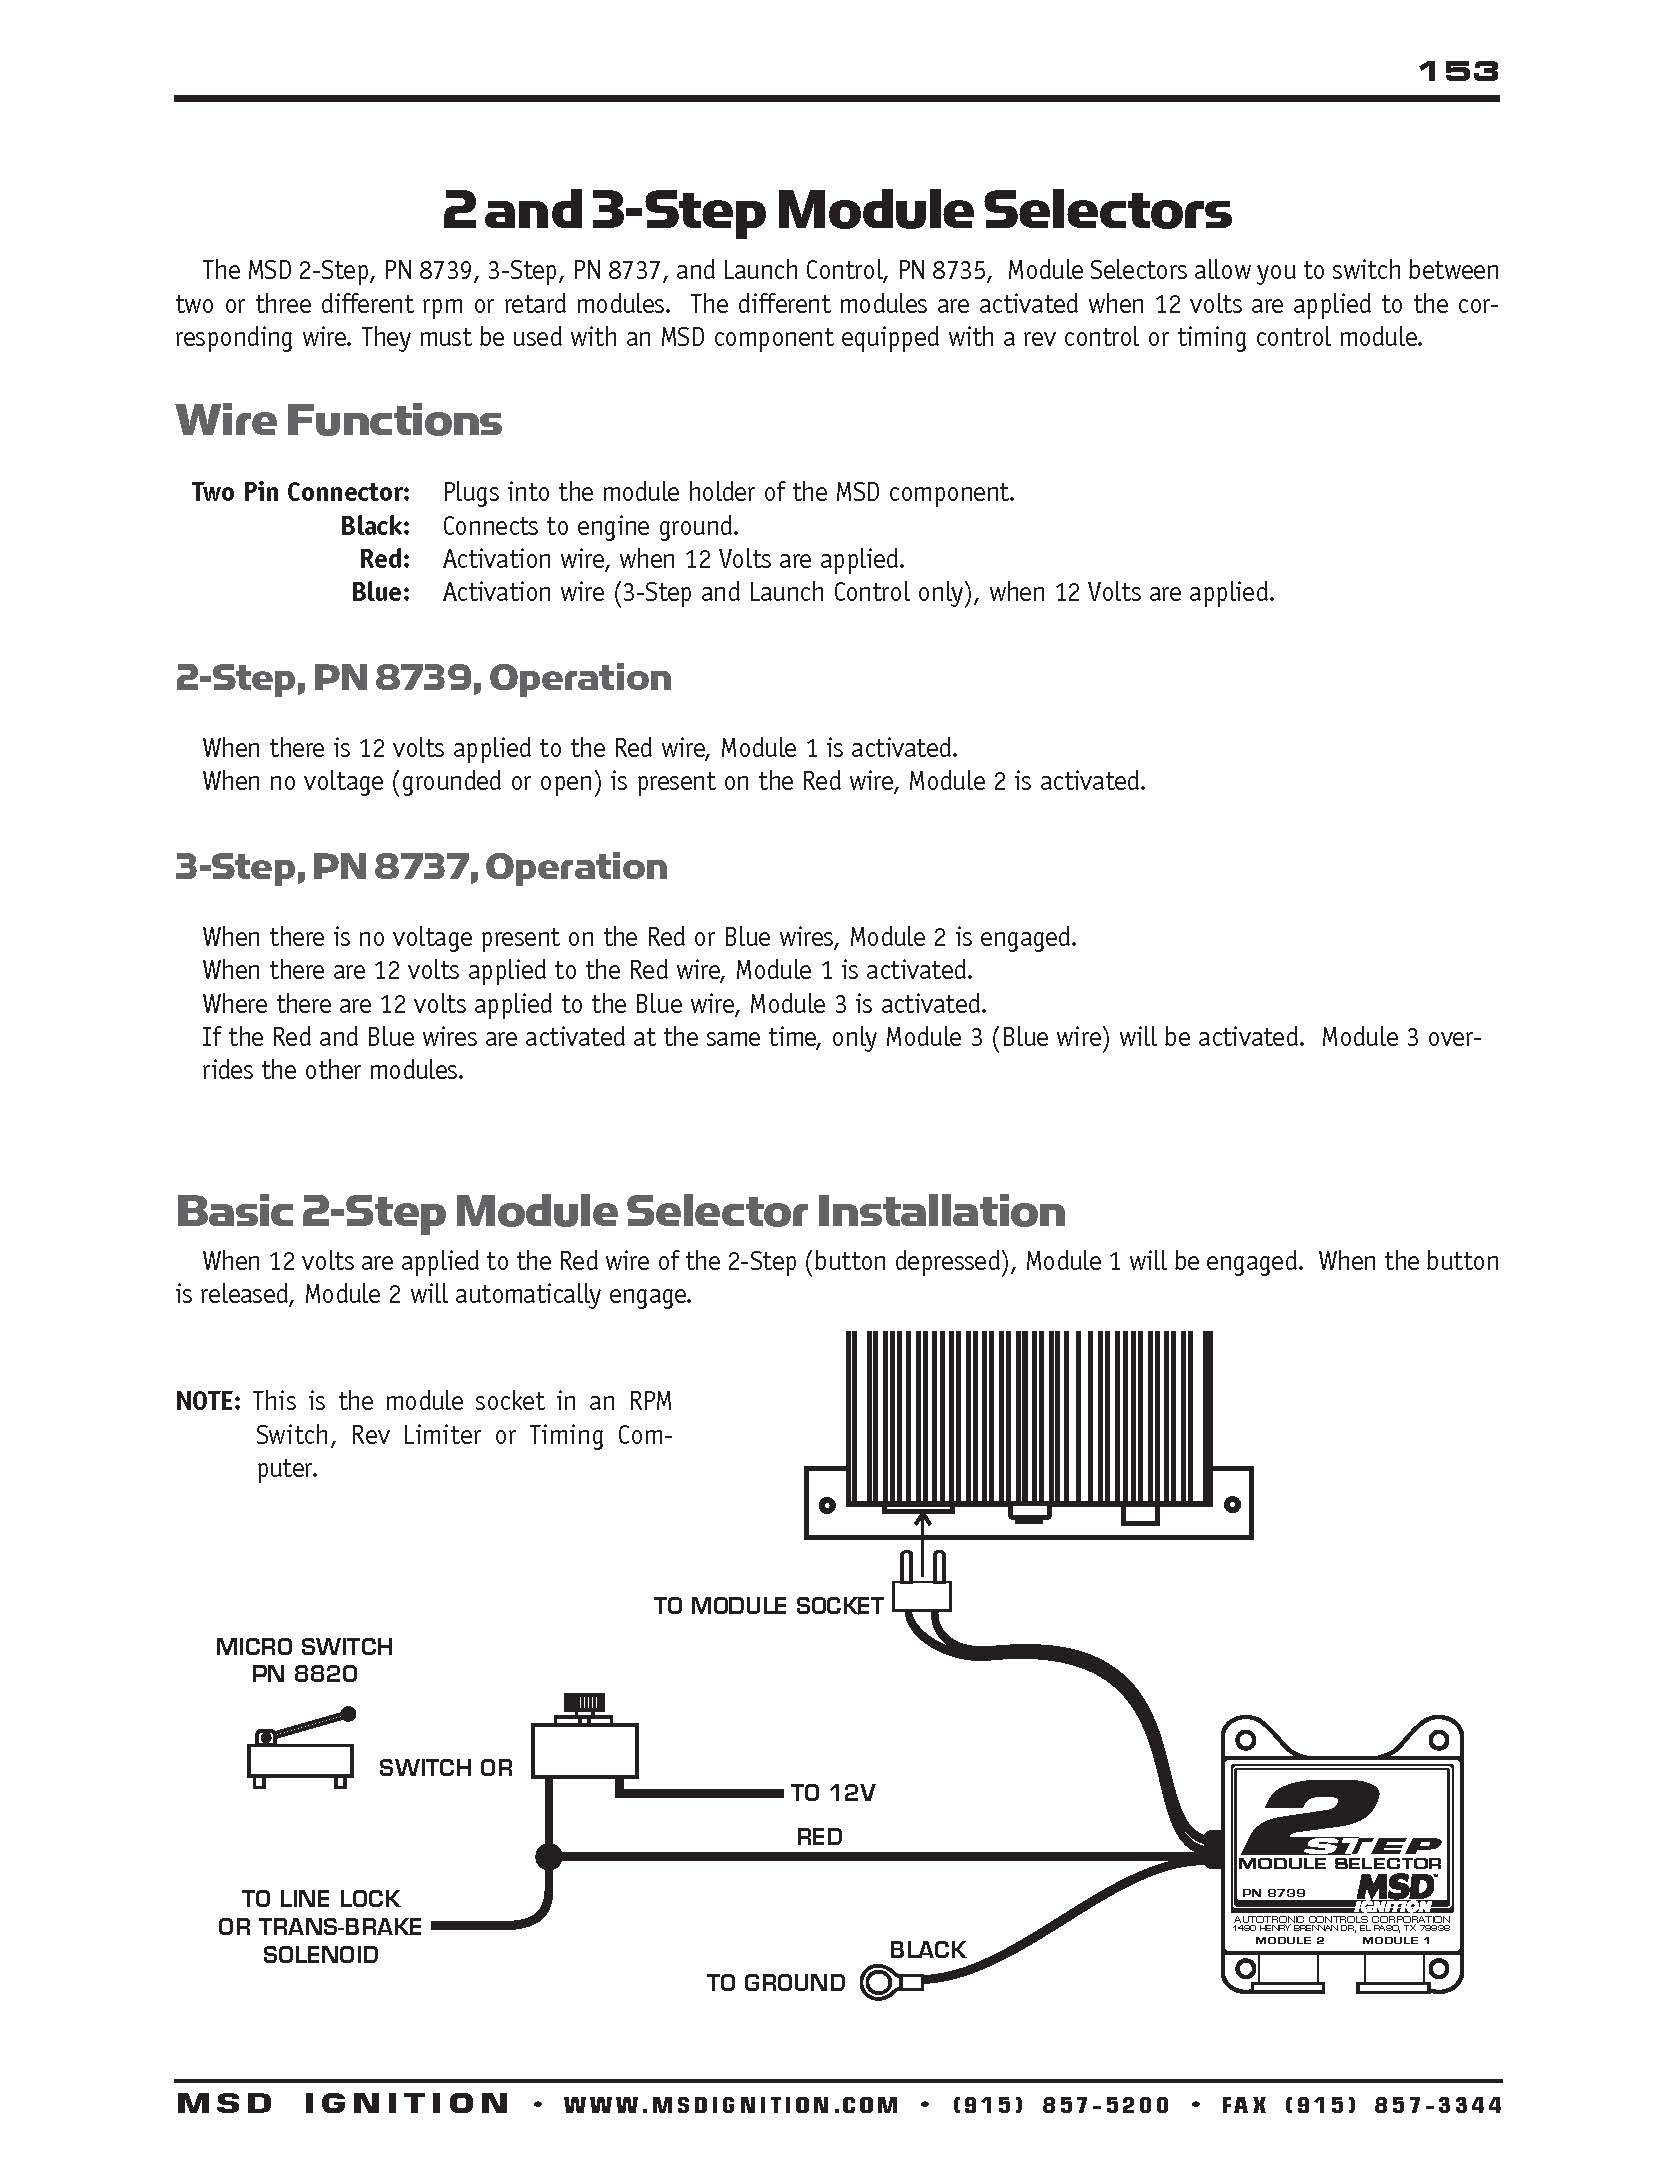 Msd 2 Step Wiring Diagram | Manual E-Books - Msd 2 Step Wiring Diagram